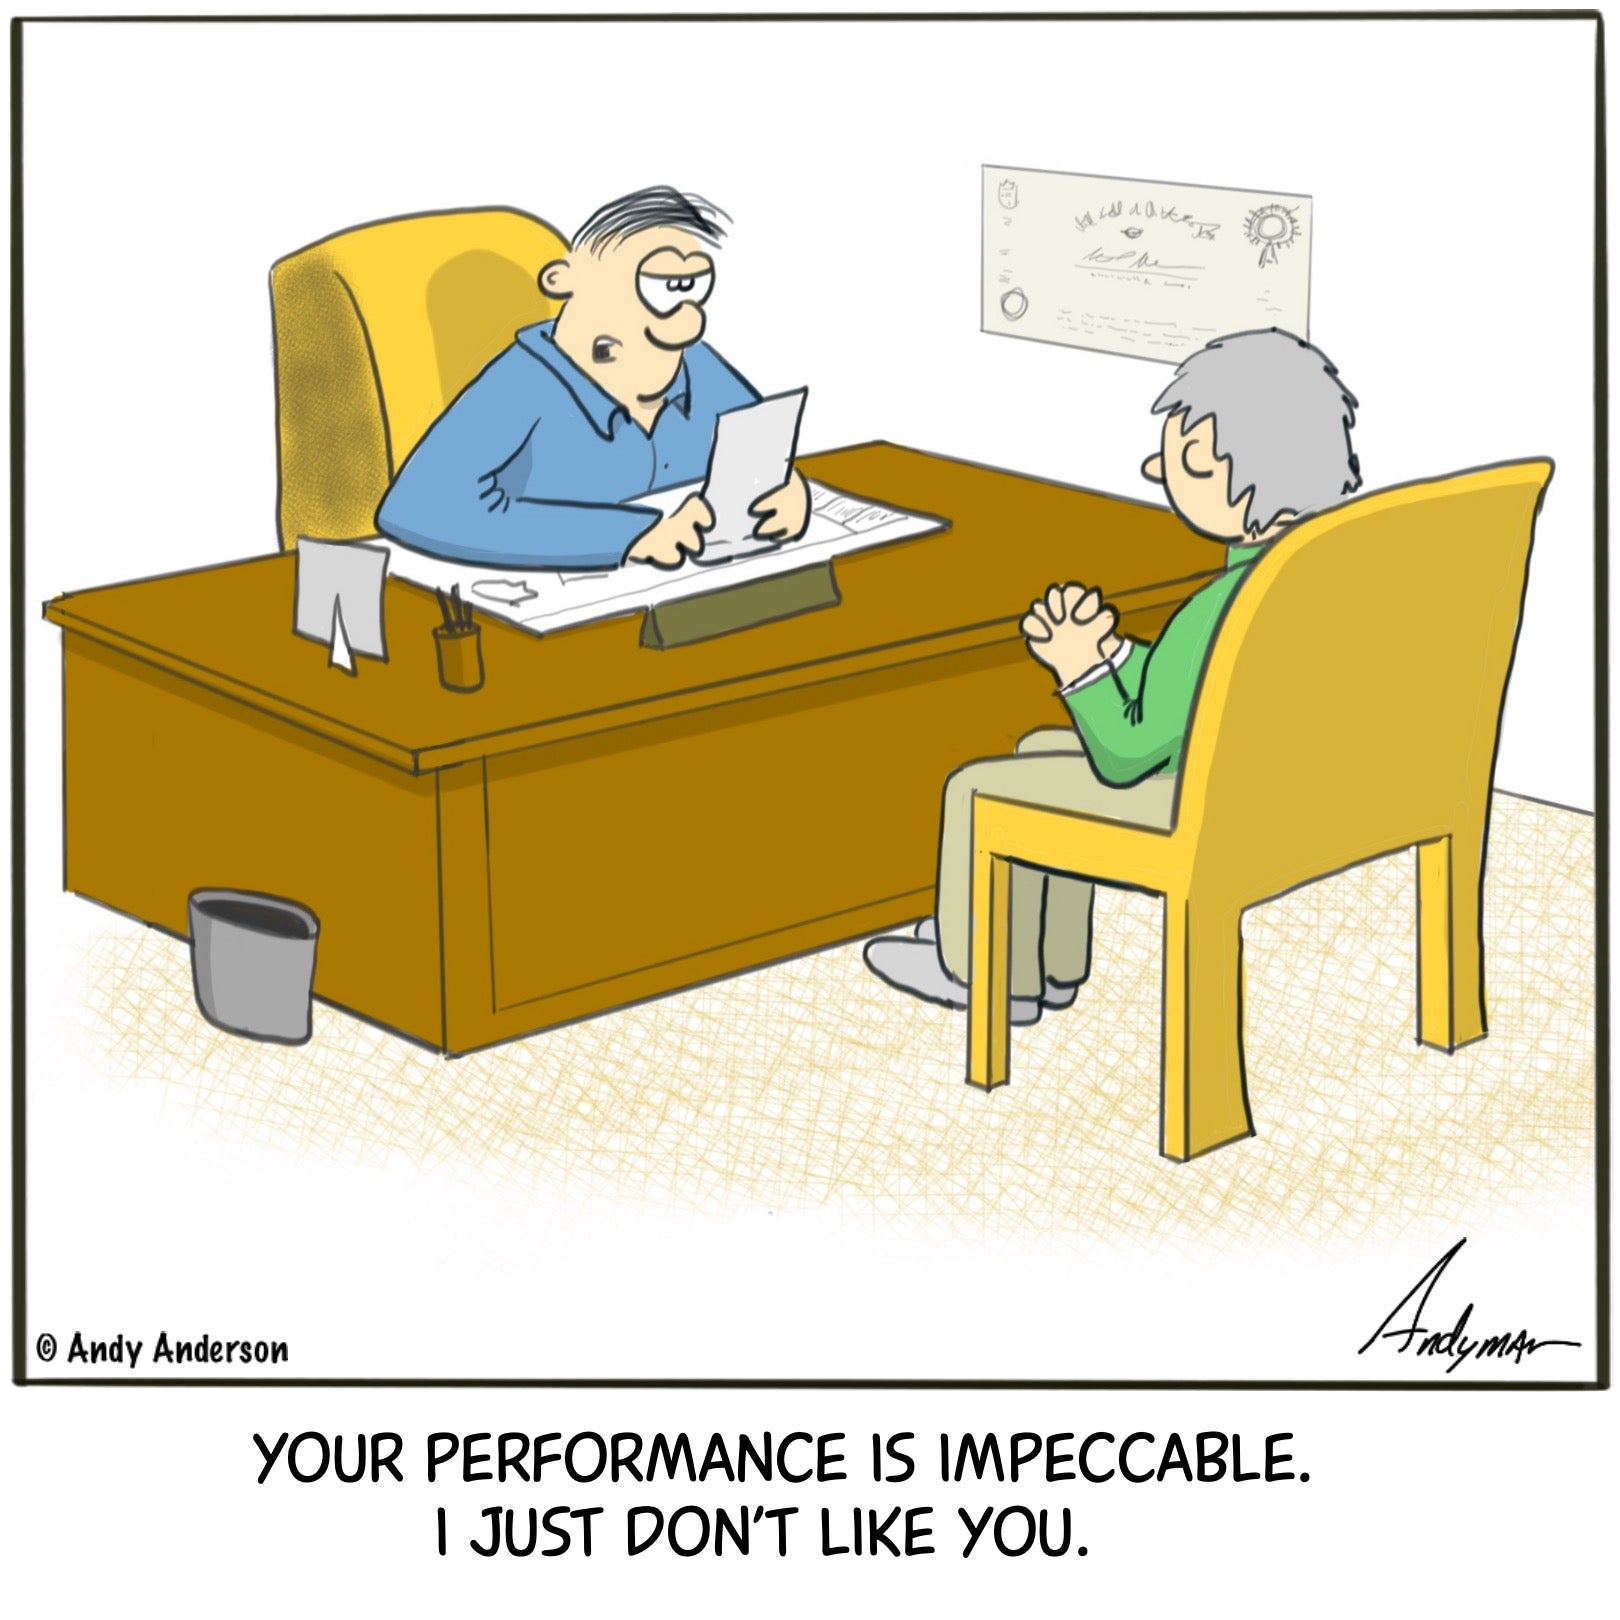 Performance is impeccable I just don't like you cartoon by Andy Anderson